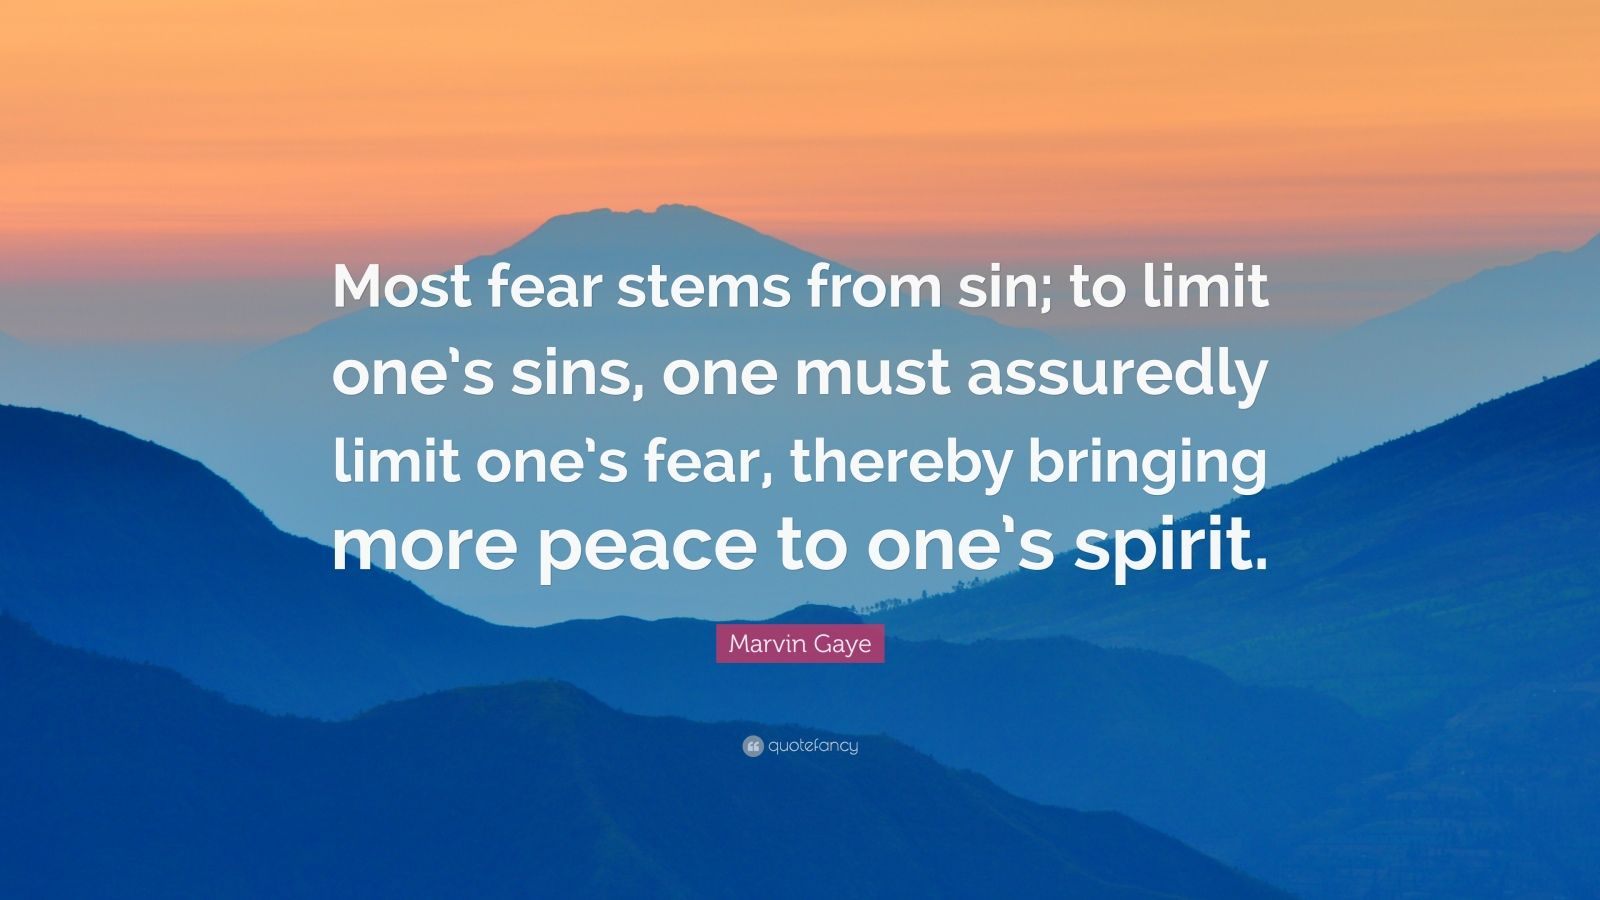 """Marvin Gaye Quote: """"Most fear stems from sin; to limit one's sins, one must assuredly limit one's fear, thereby bringing more peace to one's spirit."""""""